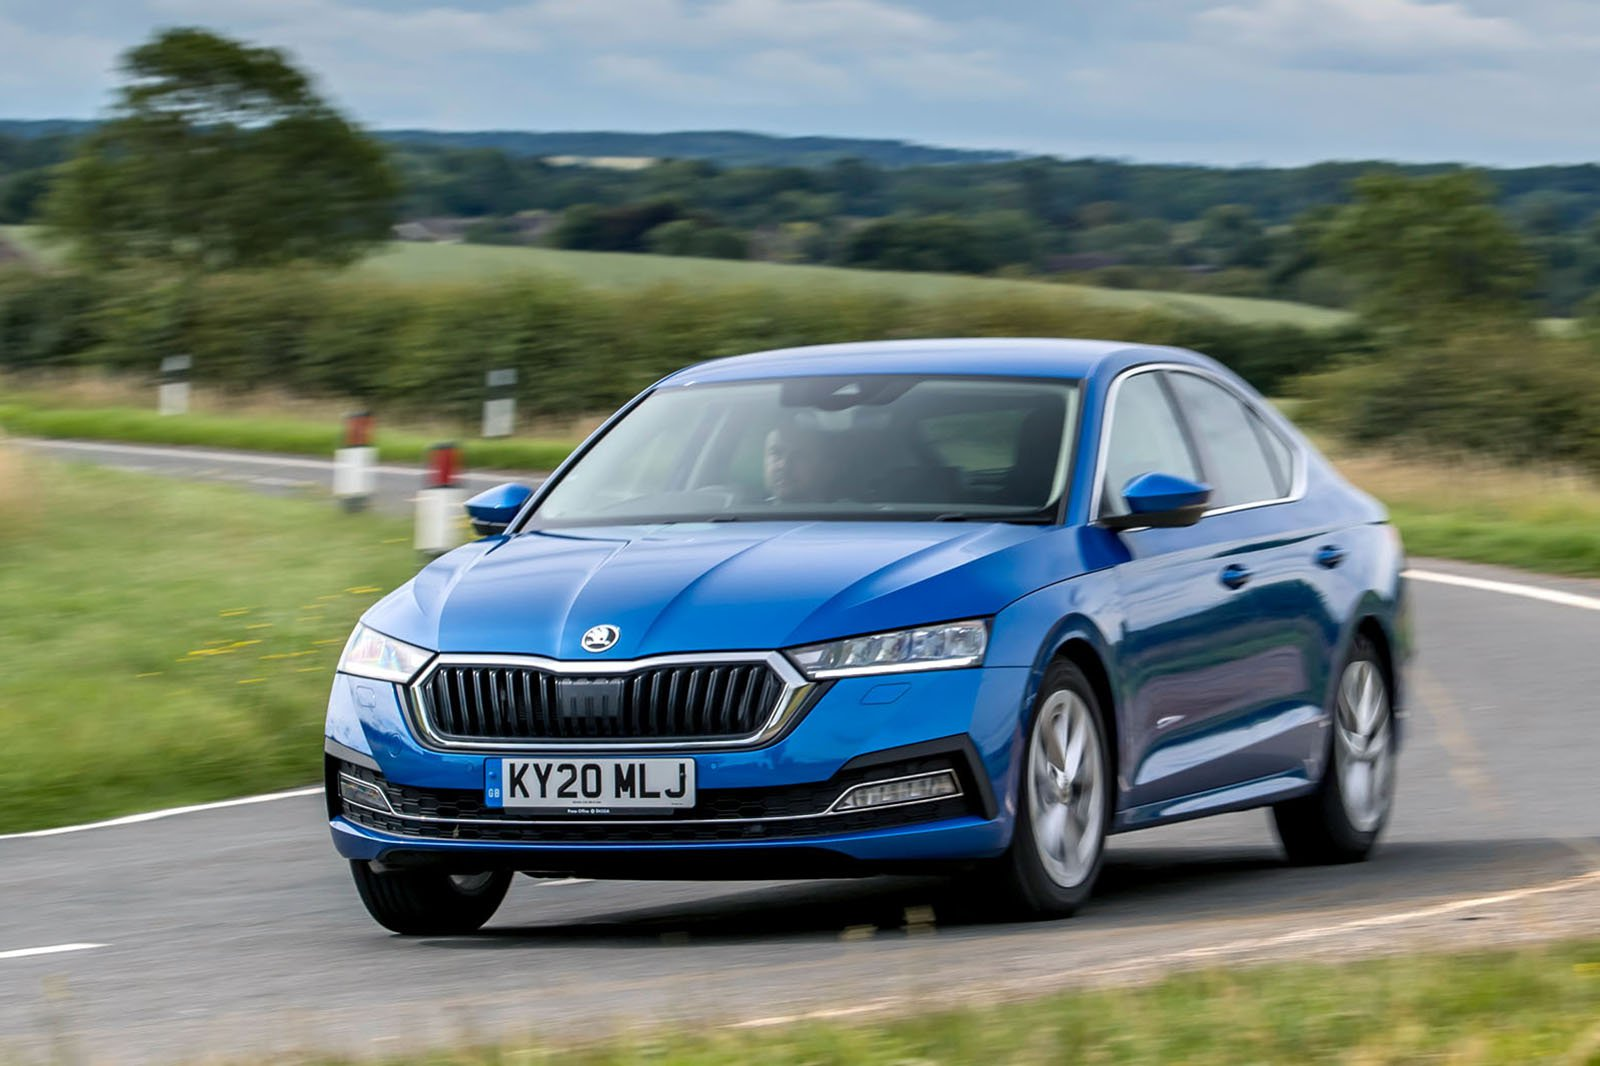 Skoda Octavia hatchback 2020 front left tracking